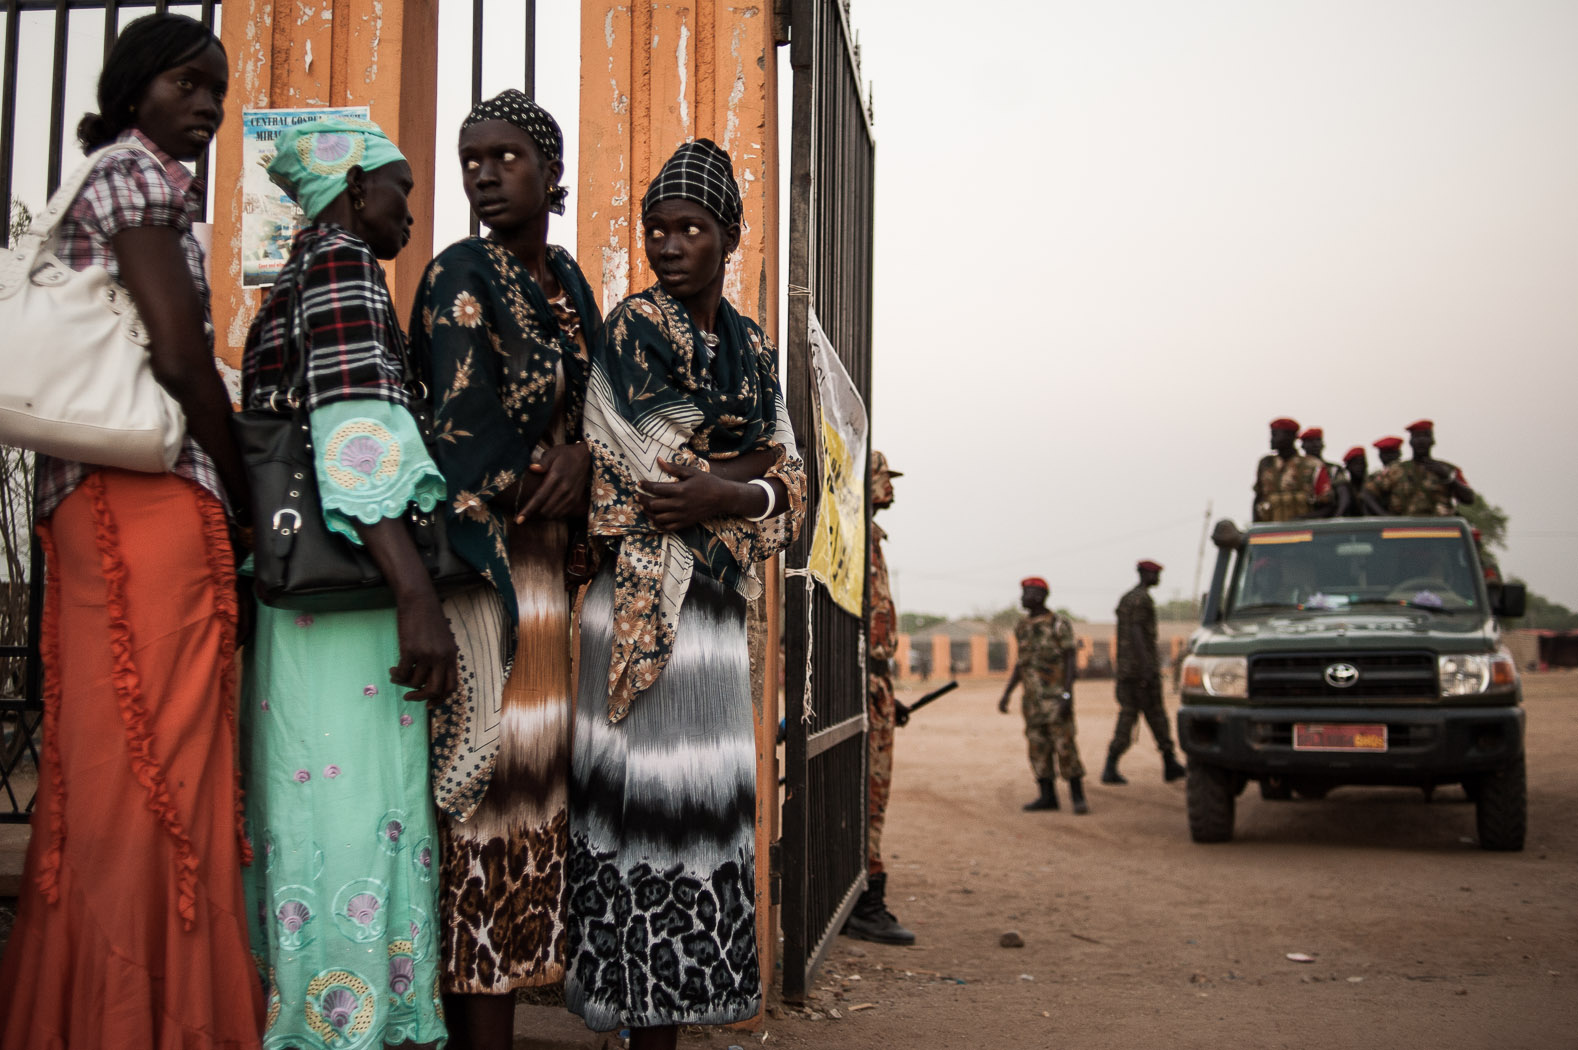 On the morning of 9th January 2011, thousands of South Sudanese queued from the early hours of the morning, anticipating the opening of an historic vote that would lead them, seven months later, to celebrate their independence.